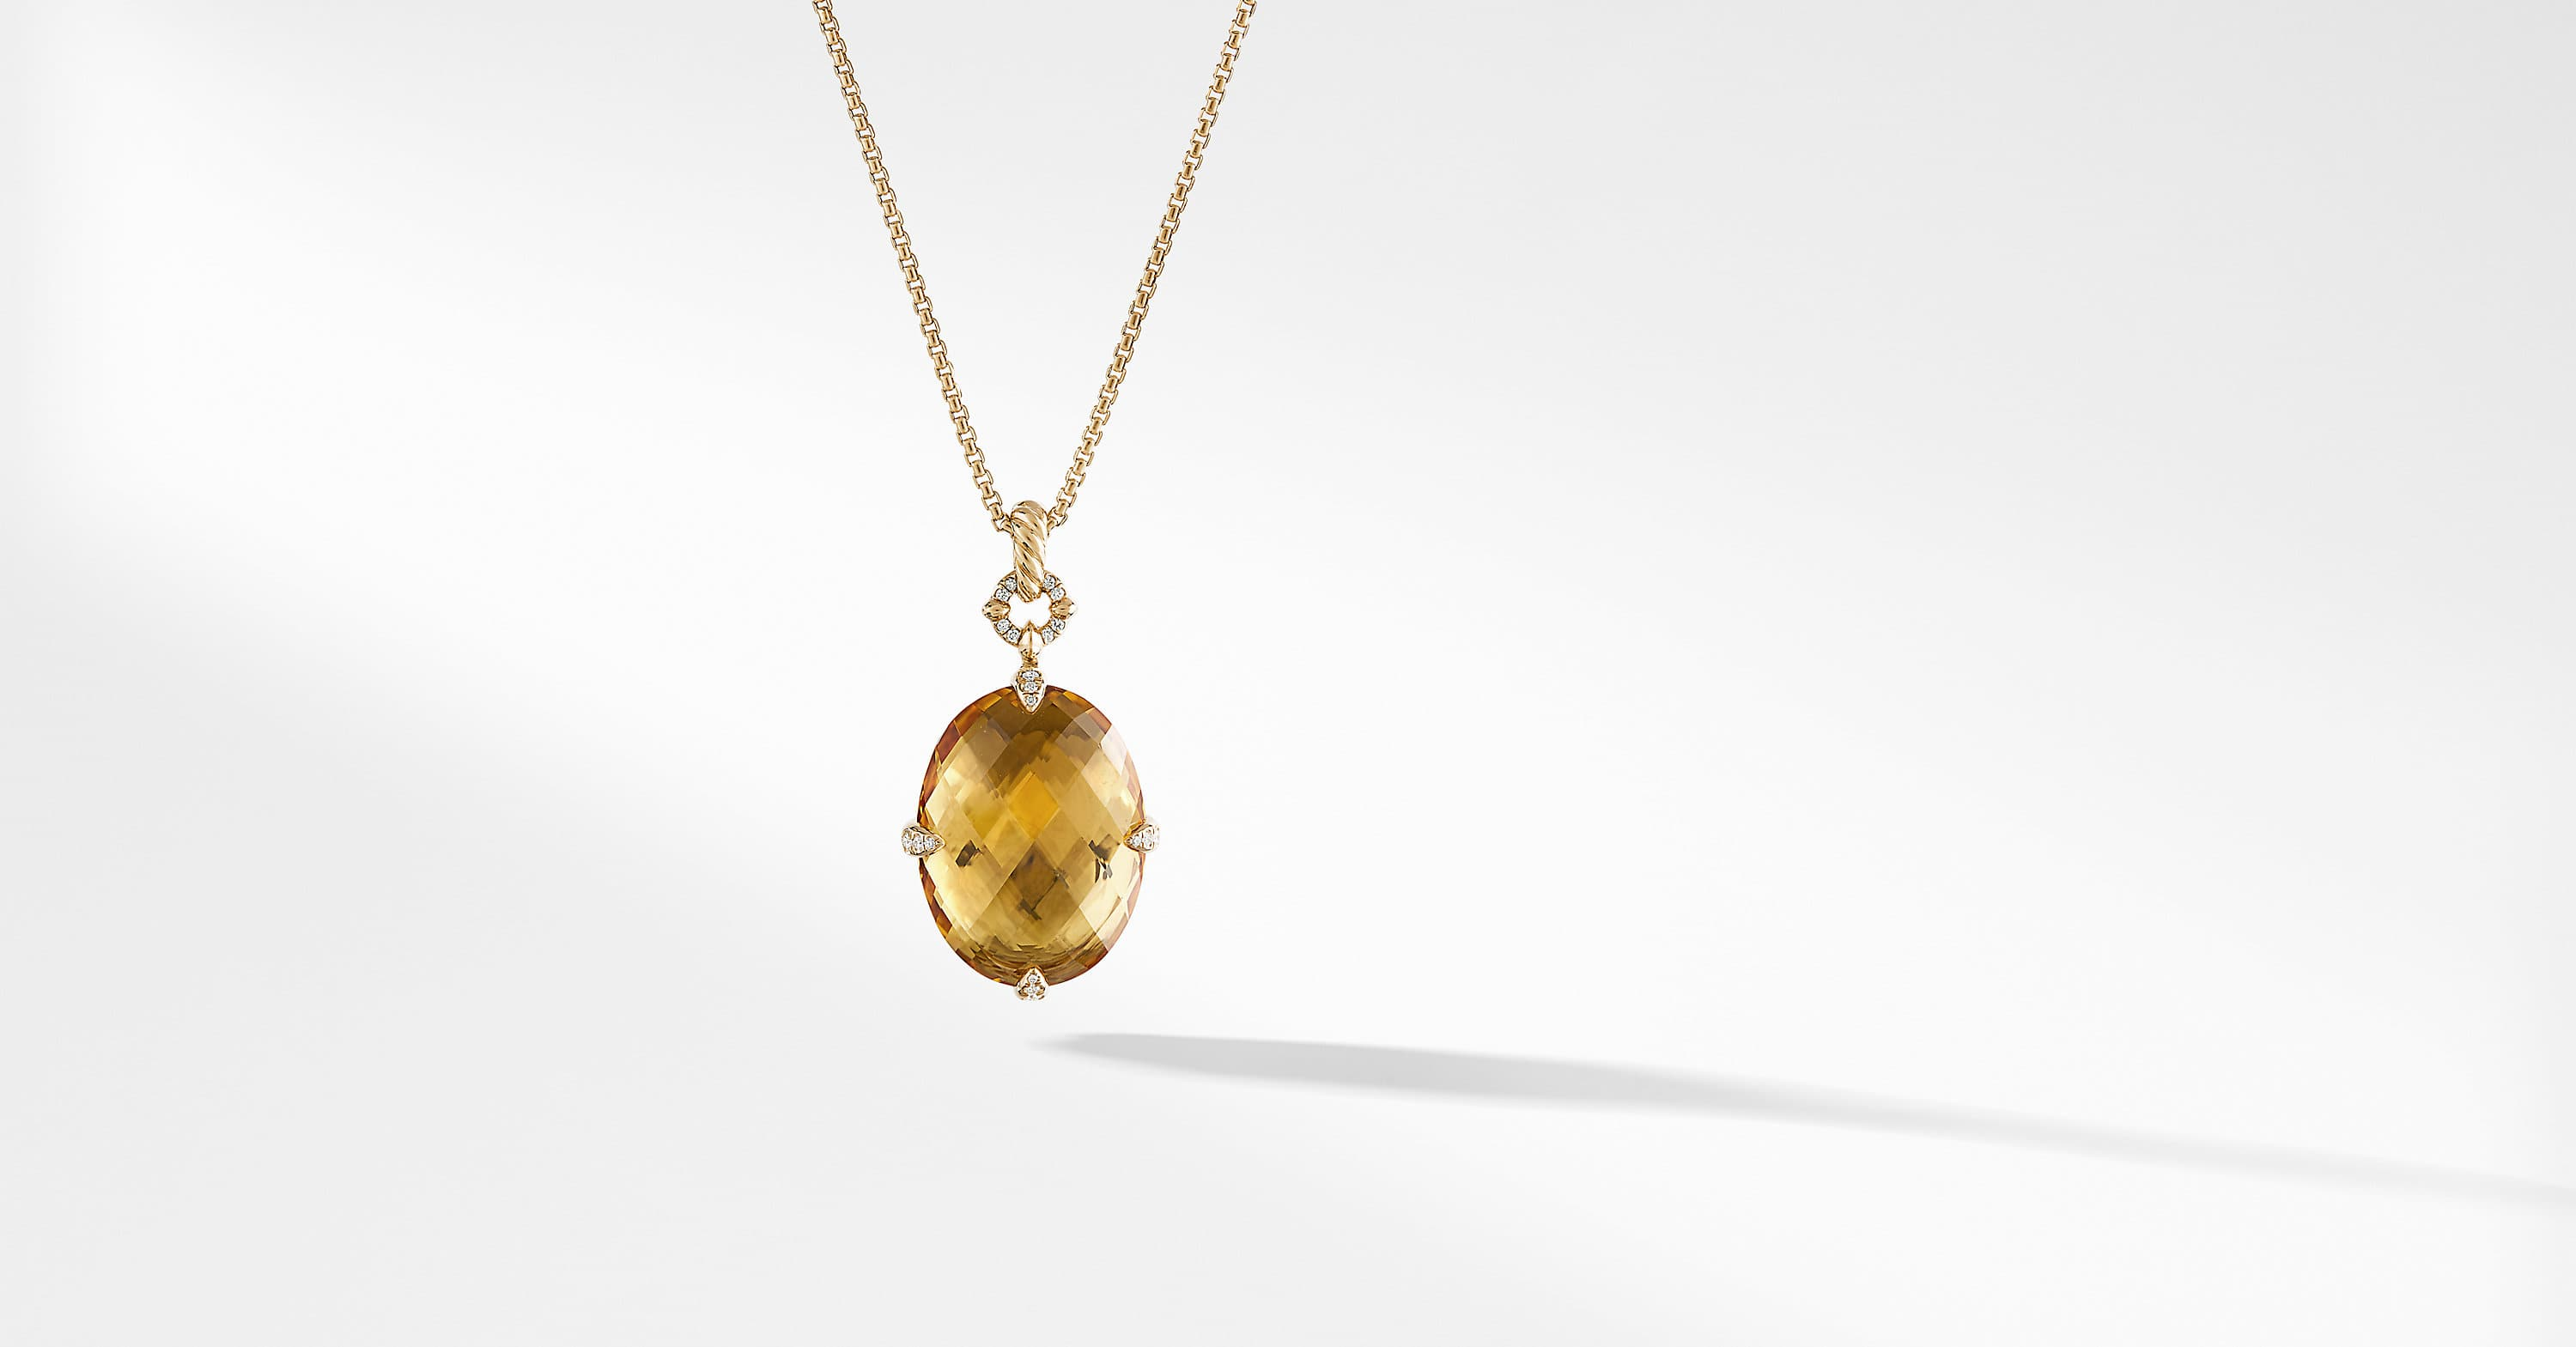 Chatelaine Pendant Necklace in 18K Gold